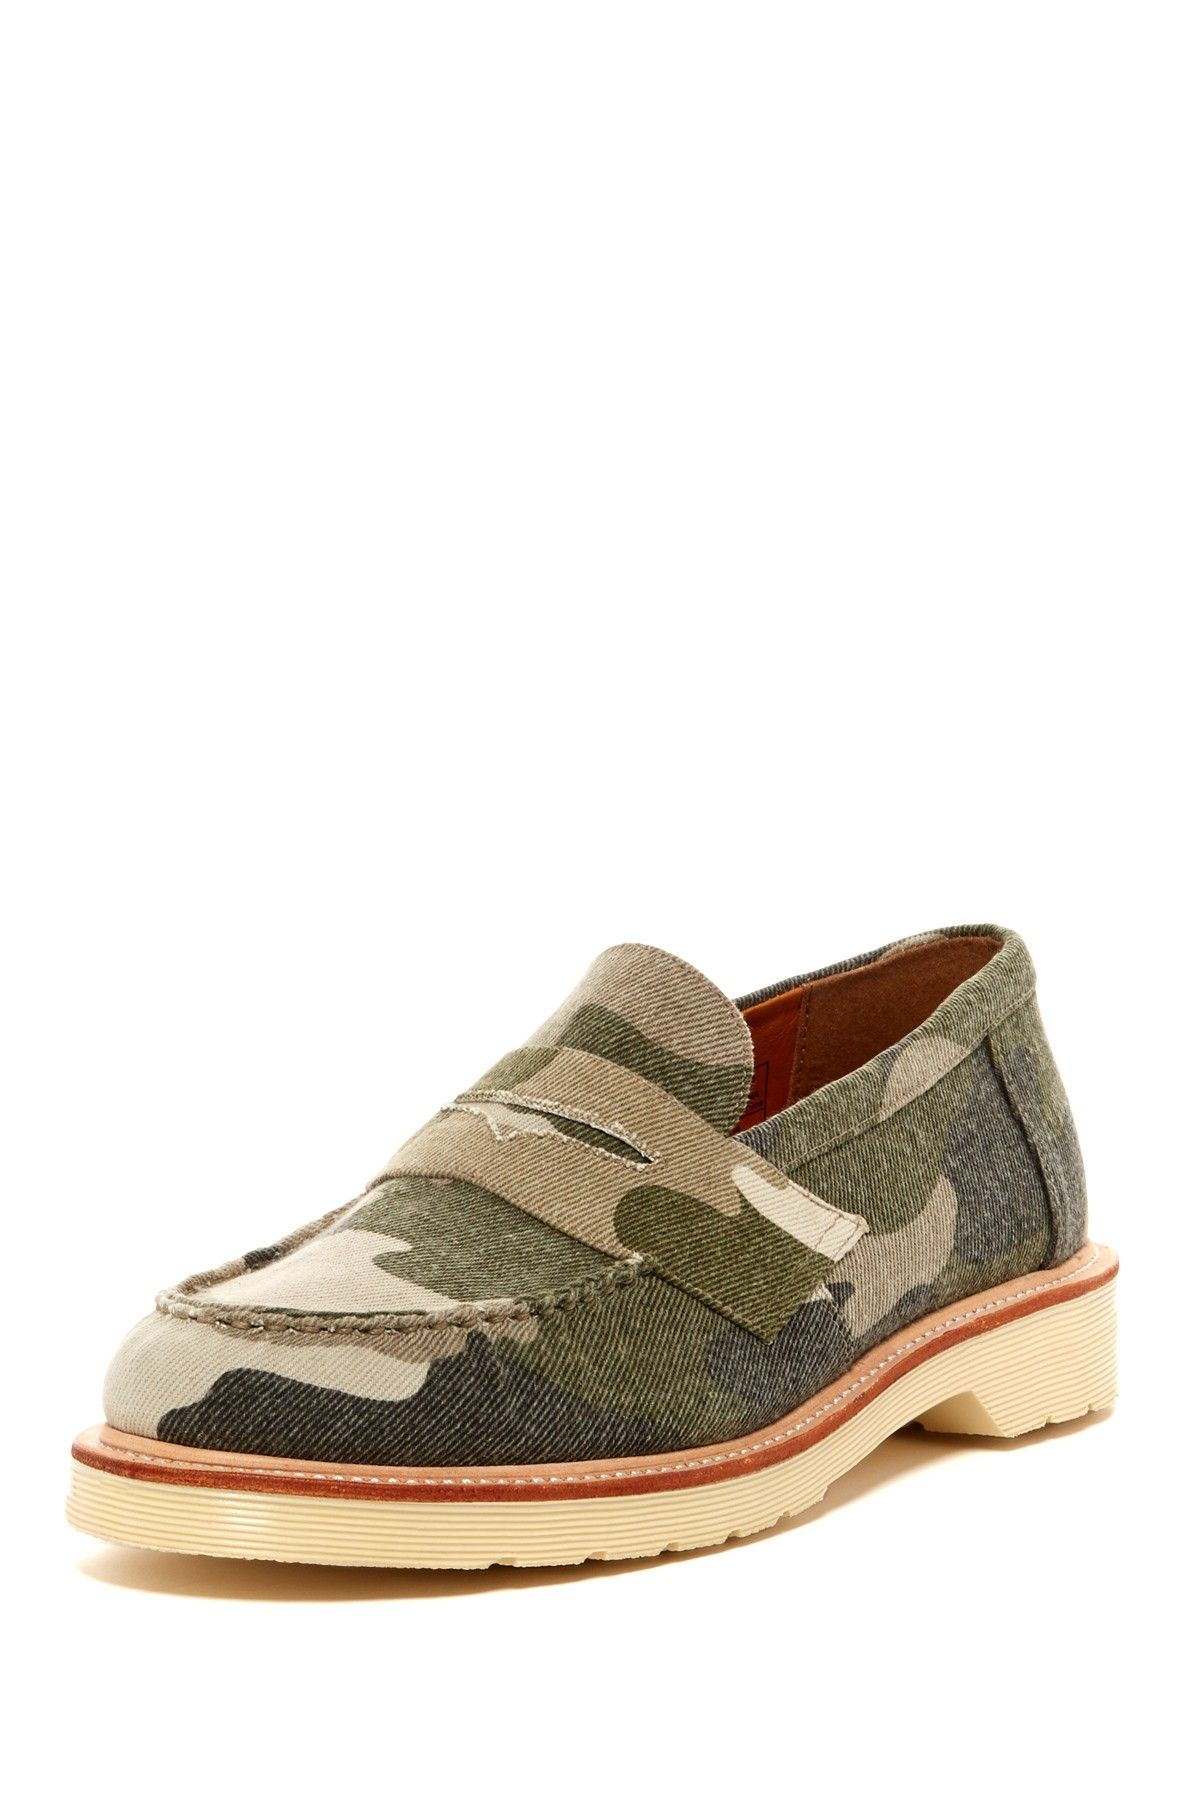 Dr. Martens Ablett Camo Penny Loafer on HauteLook (With ...